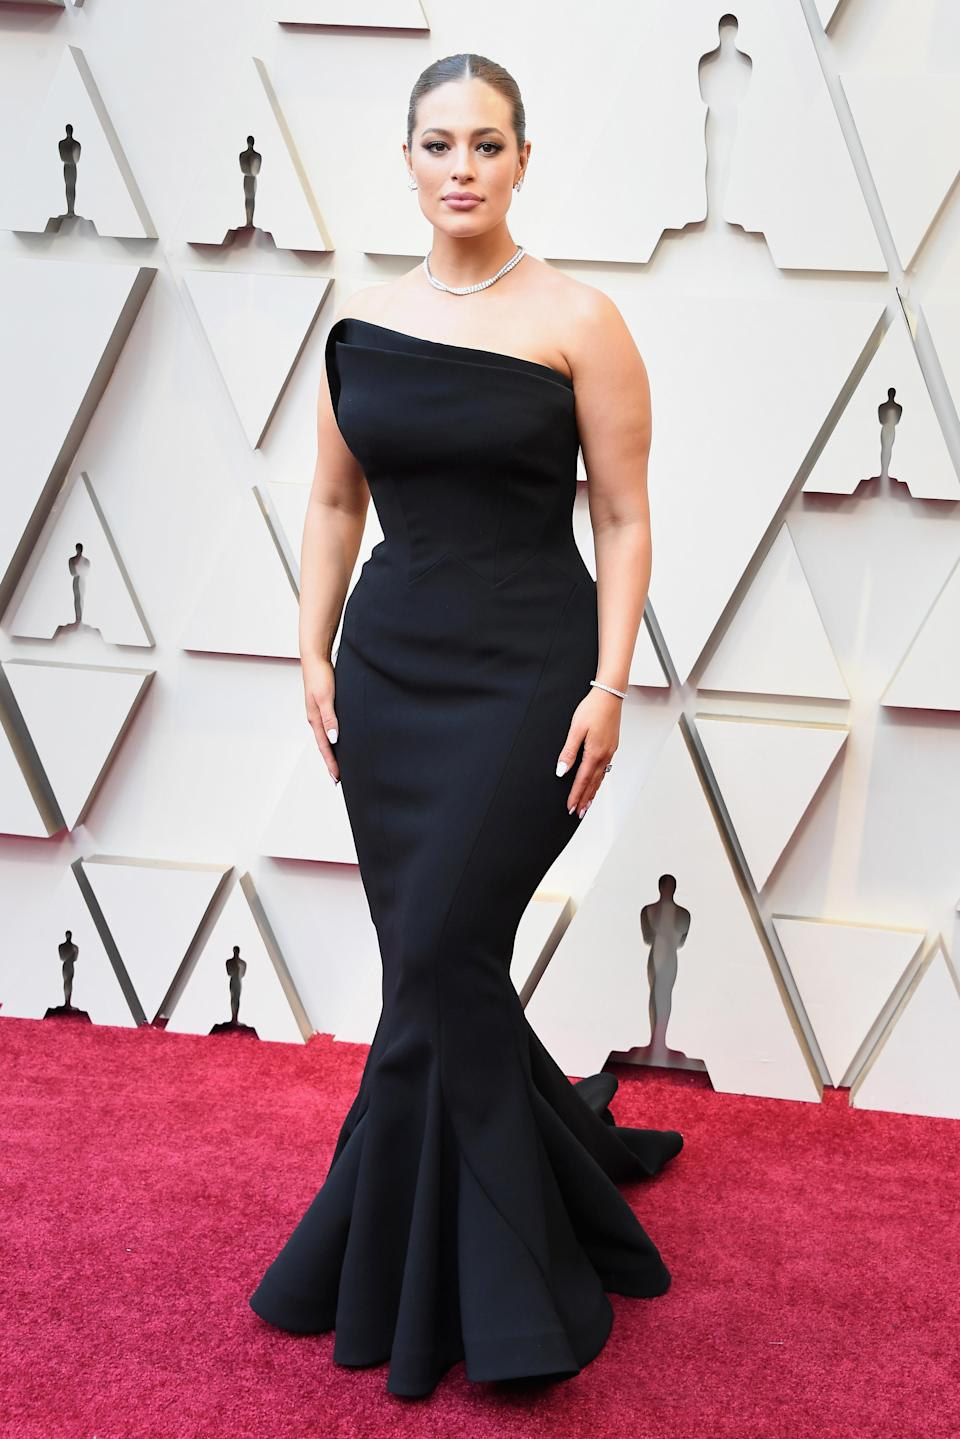 <p>The supermodel looked like a bonafide movie star in an asymmetrical black strapless gown. (Image via Getty Images) </p>